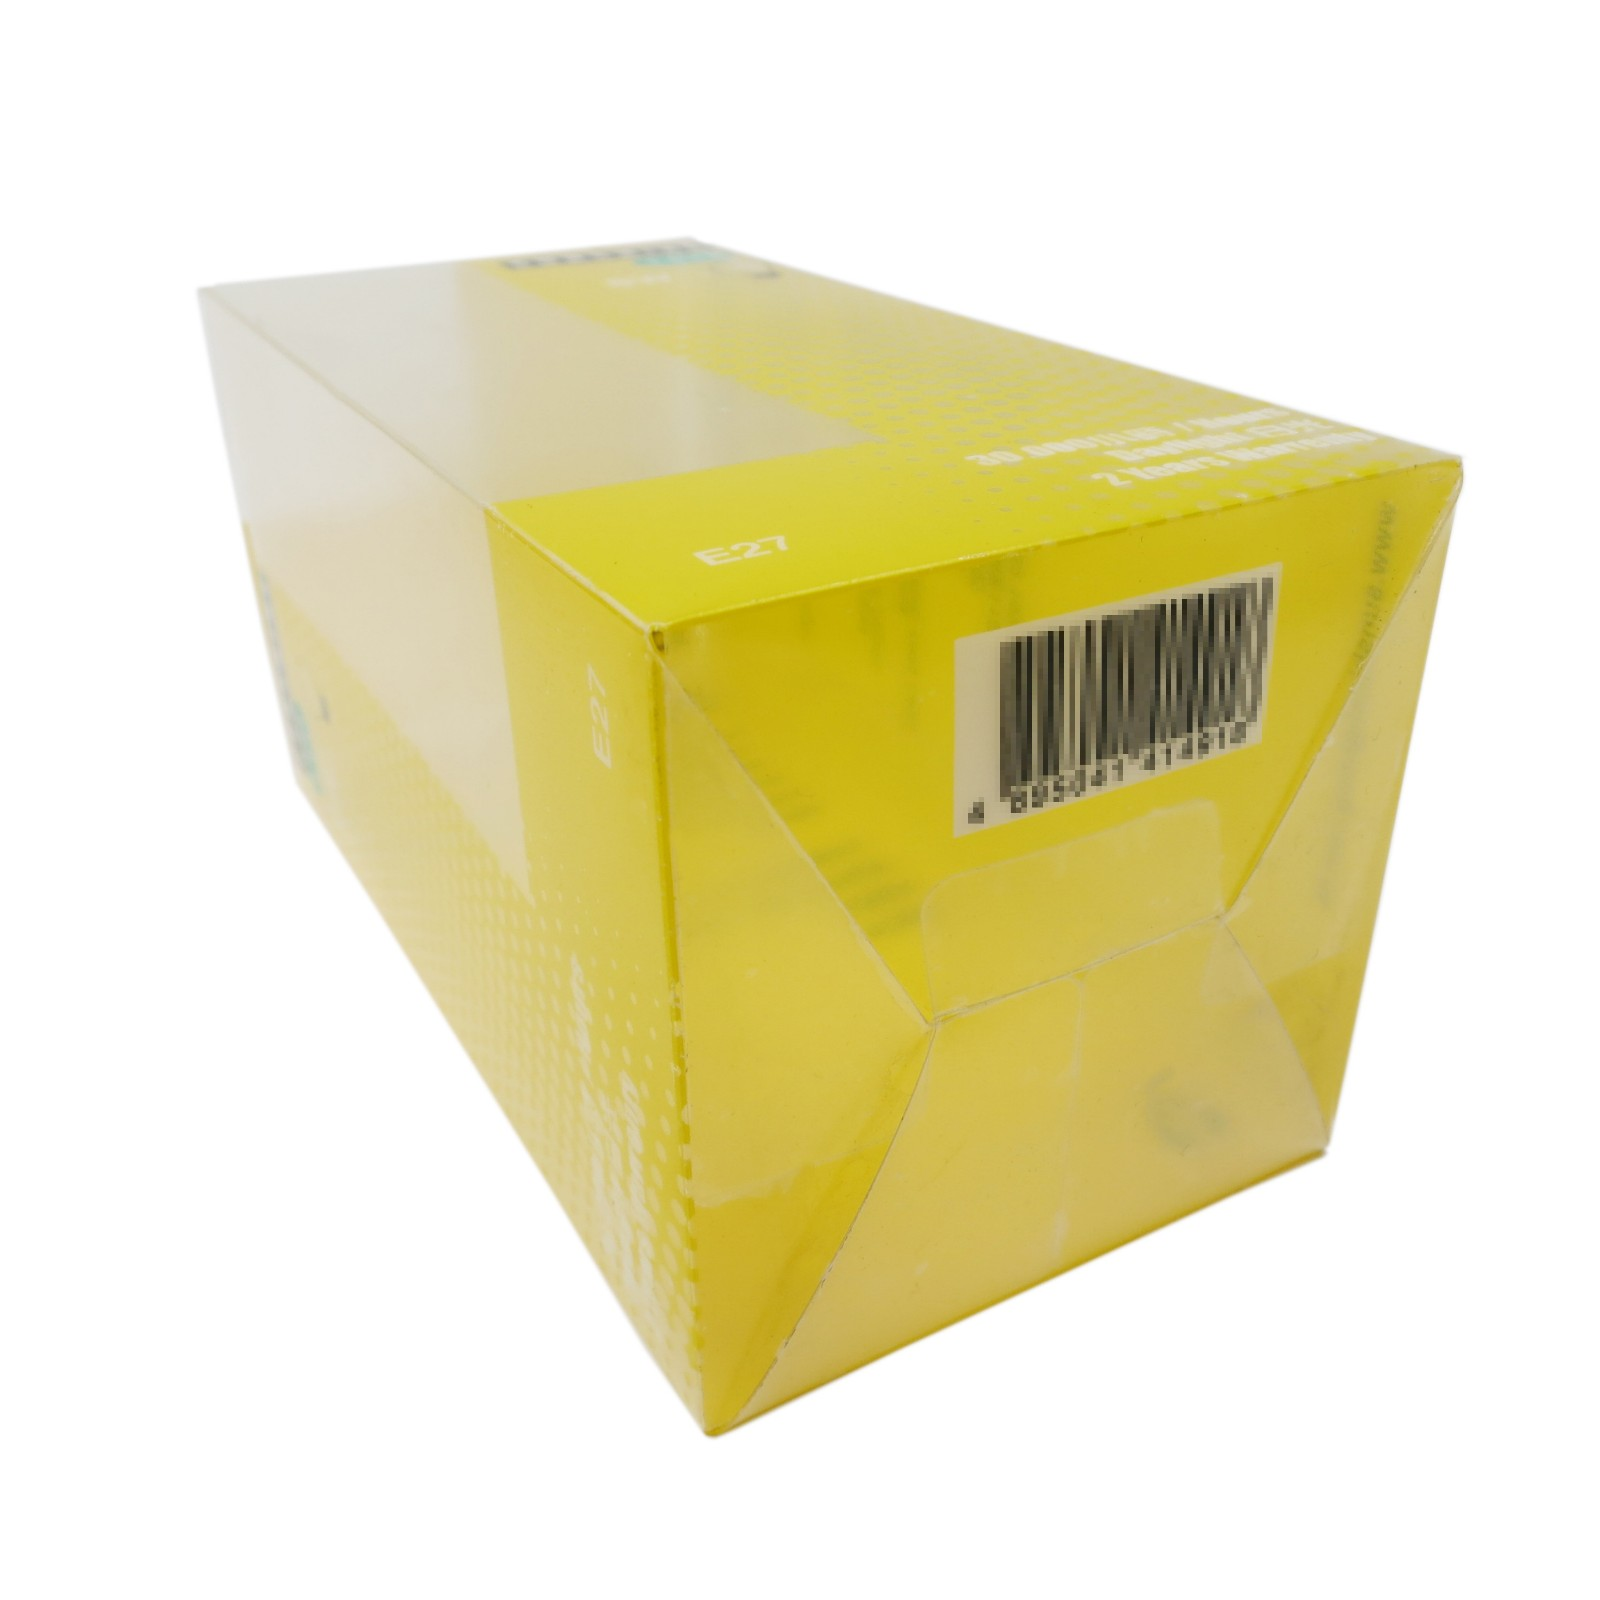 Yijianxing Plastic Products mask plastic box packaging widely-use for candy-3